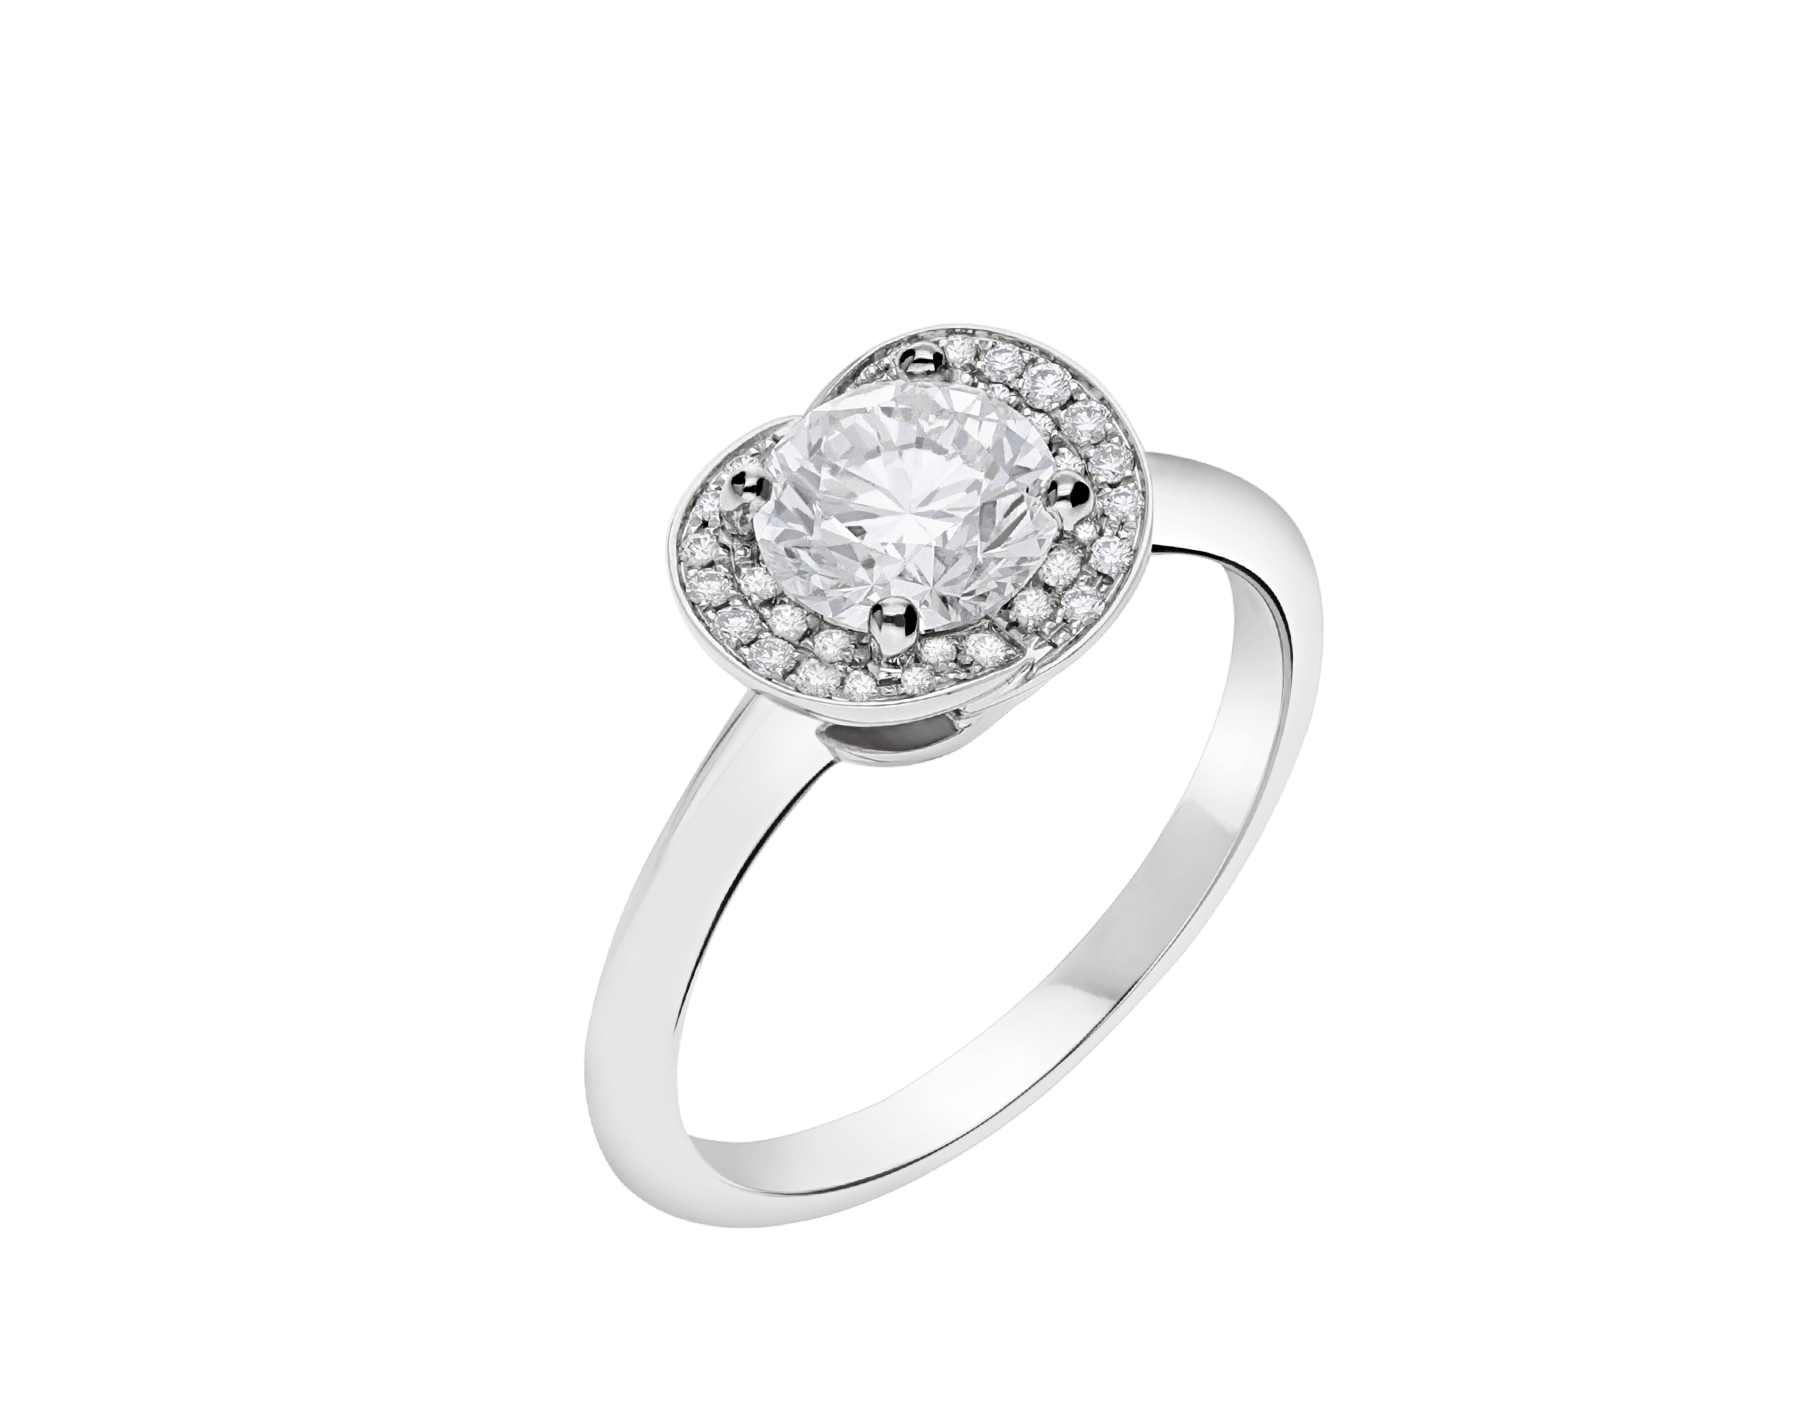 Incontro d'Amore platinum ring set with a round brilliant-cut diamond and a halo of pavé diamonds. 355409 image 2